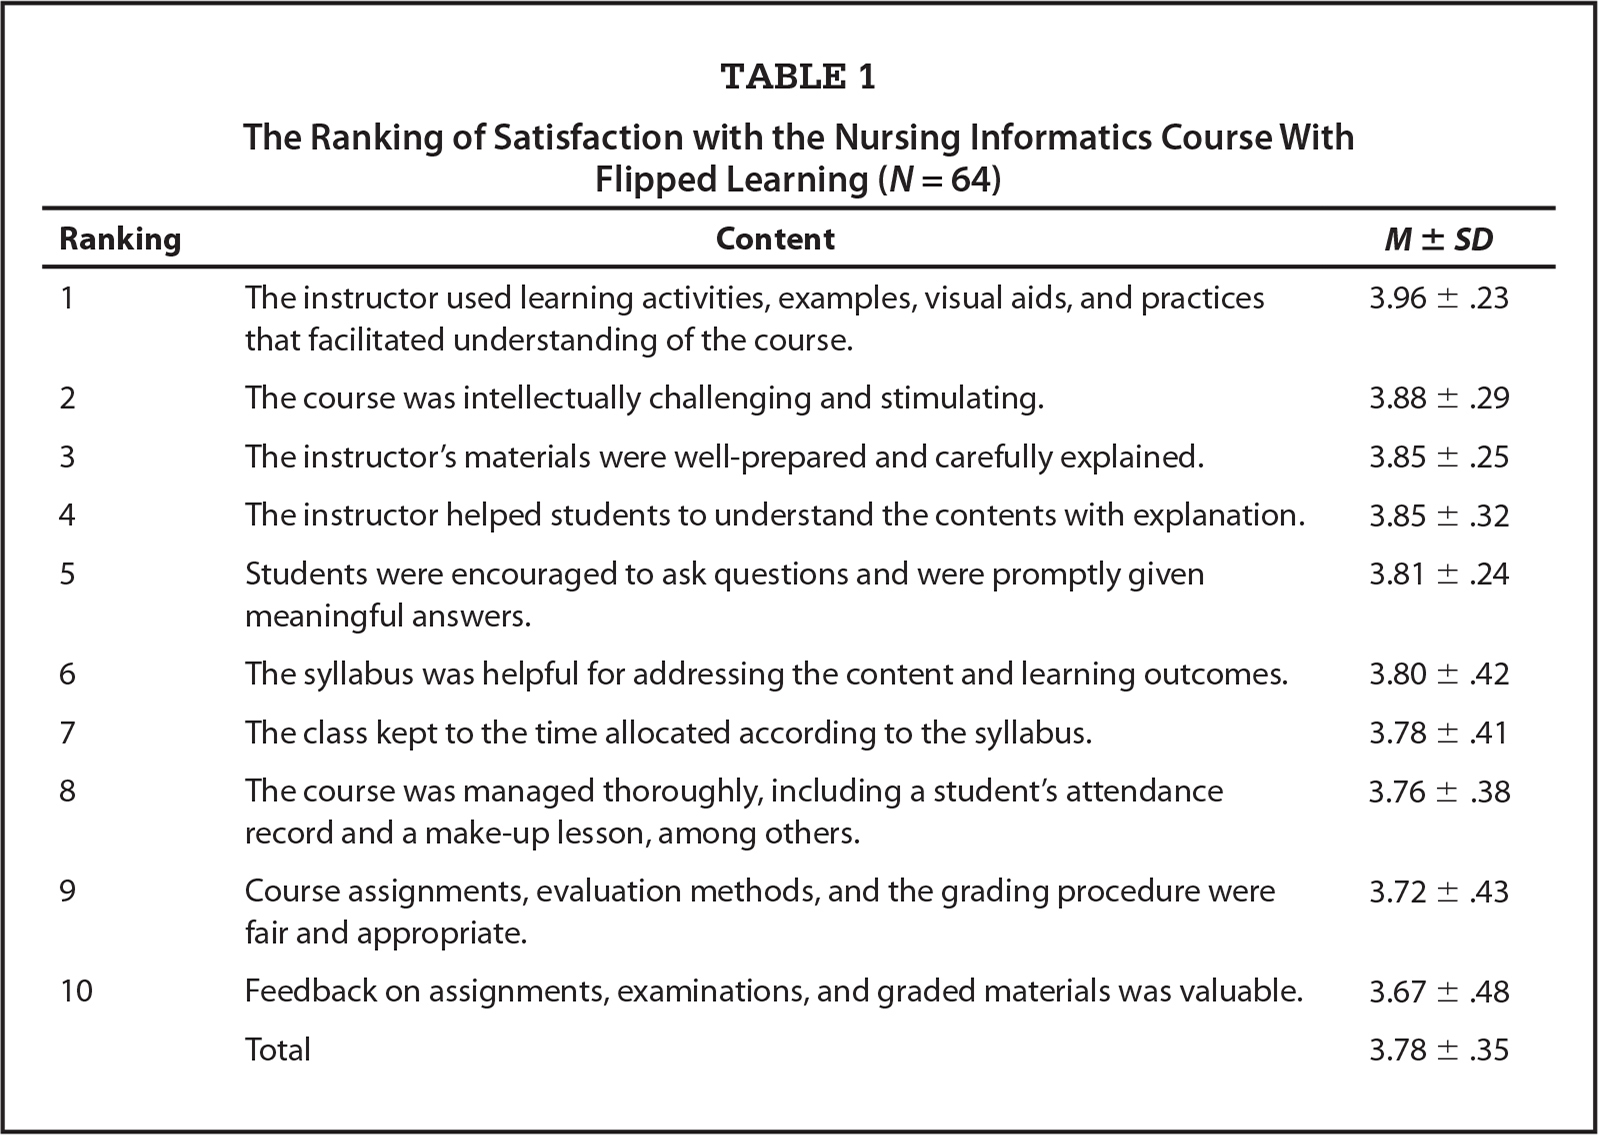 The Ranking of Satisfaction with the Nursing Informatics Course With Flipped Learning (N = 64)